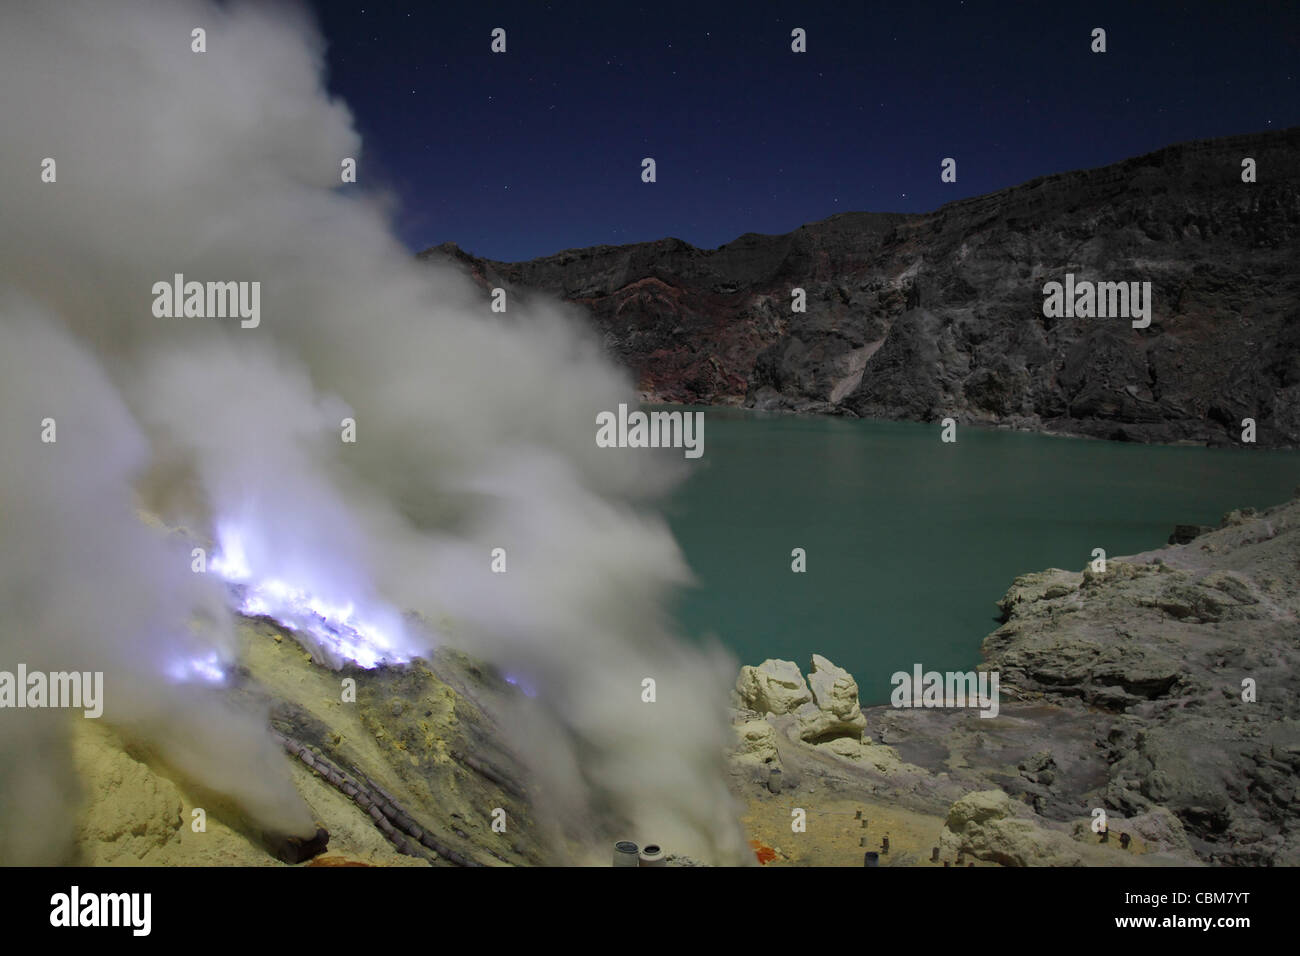 Crater of Kawah Ijen volcano containing highly acidic crater lake and solfatara with burning blue sulphur flames, - Stock Image